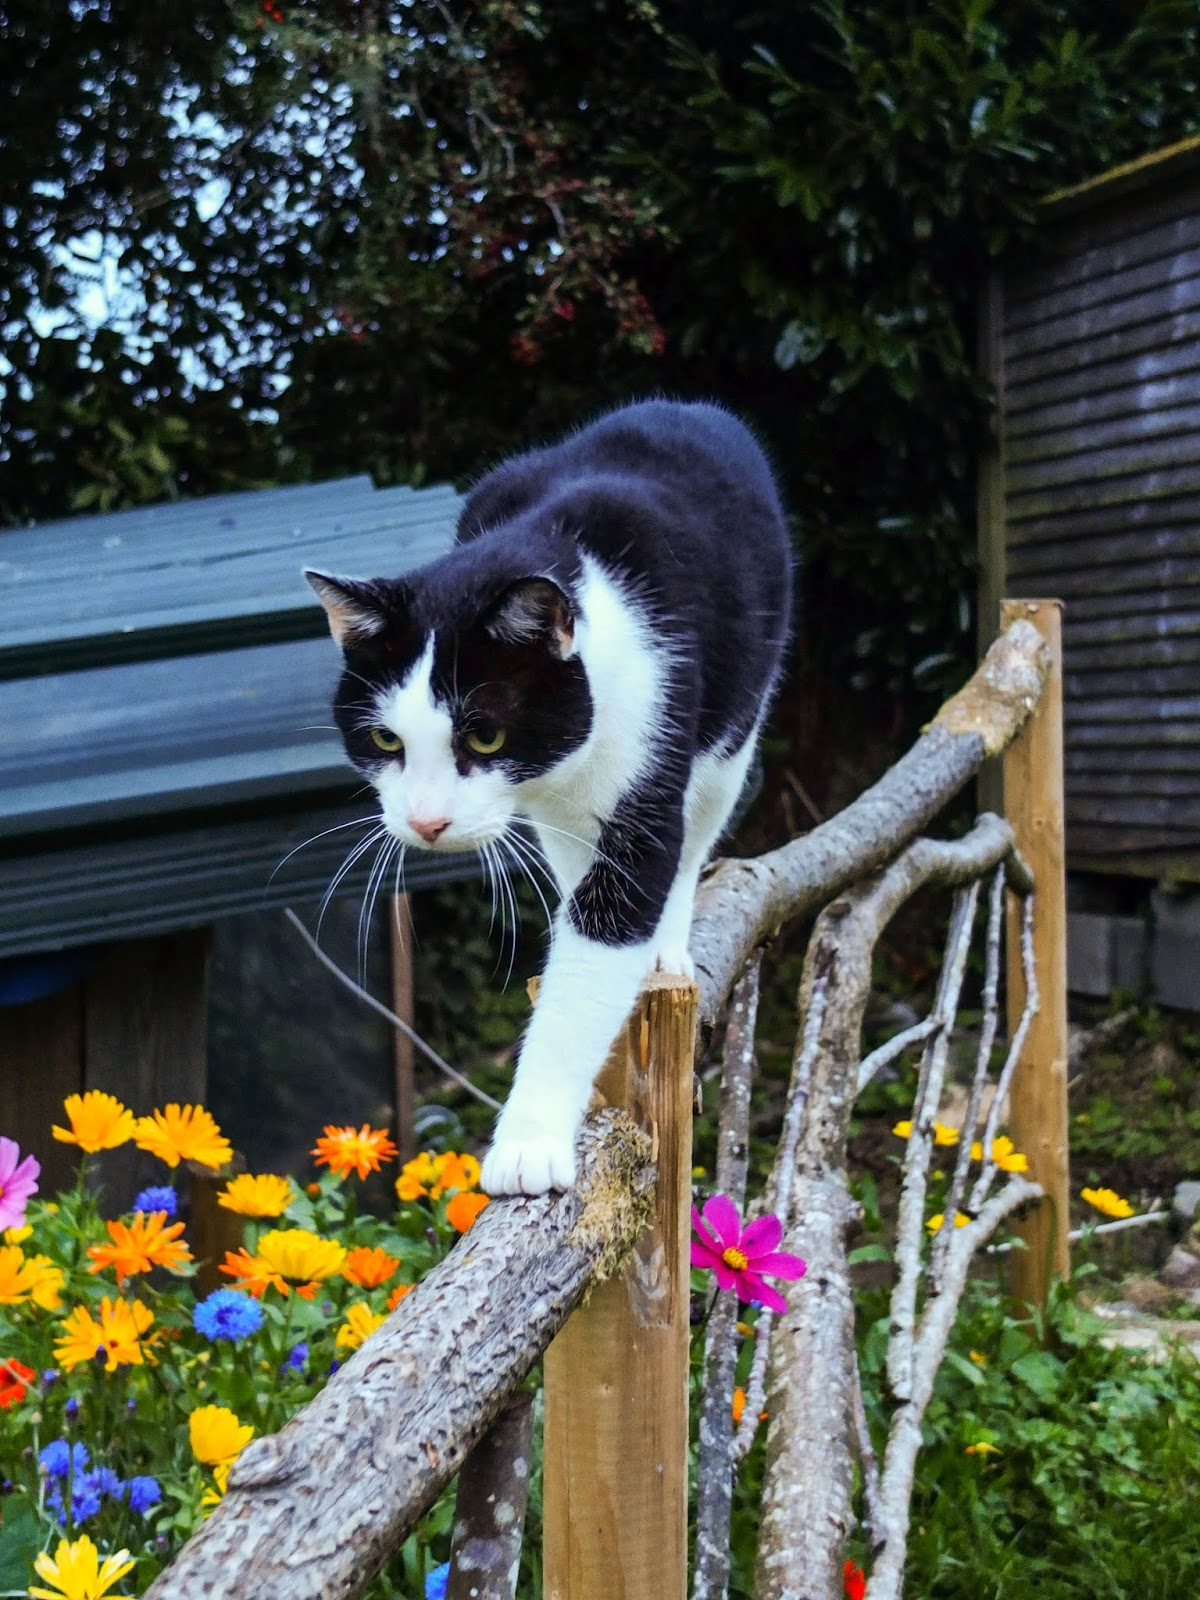 A black and white cat walking on a flower garden fence with a shed in the background.